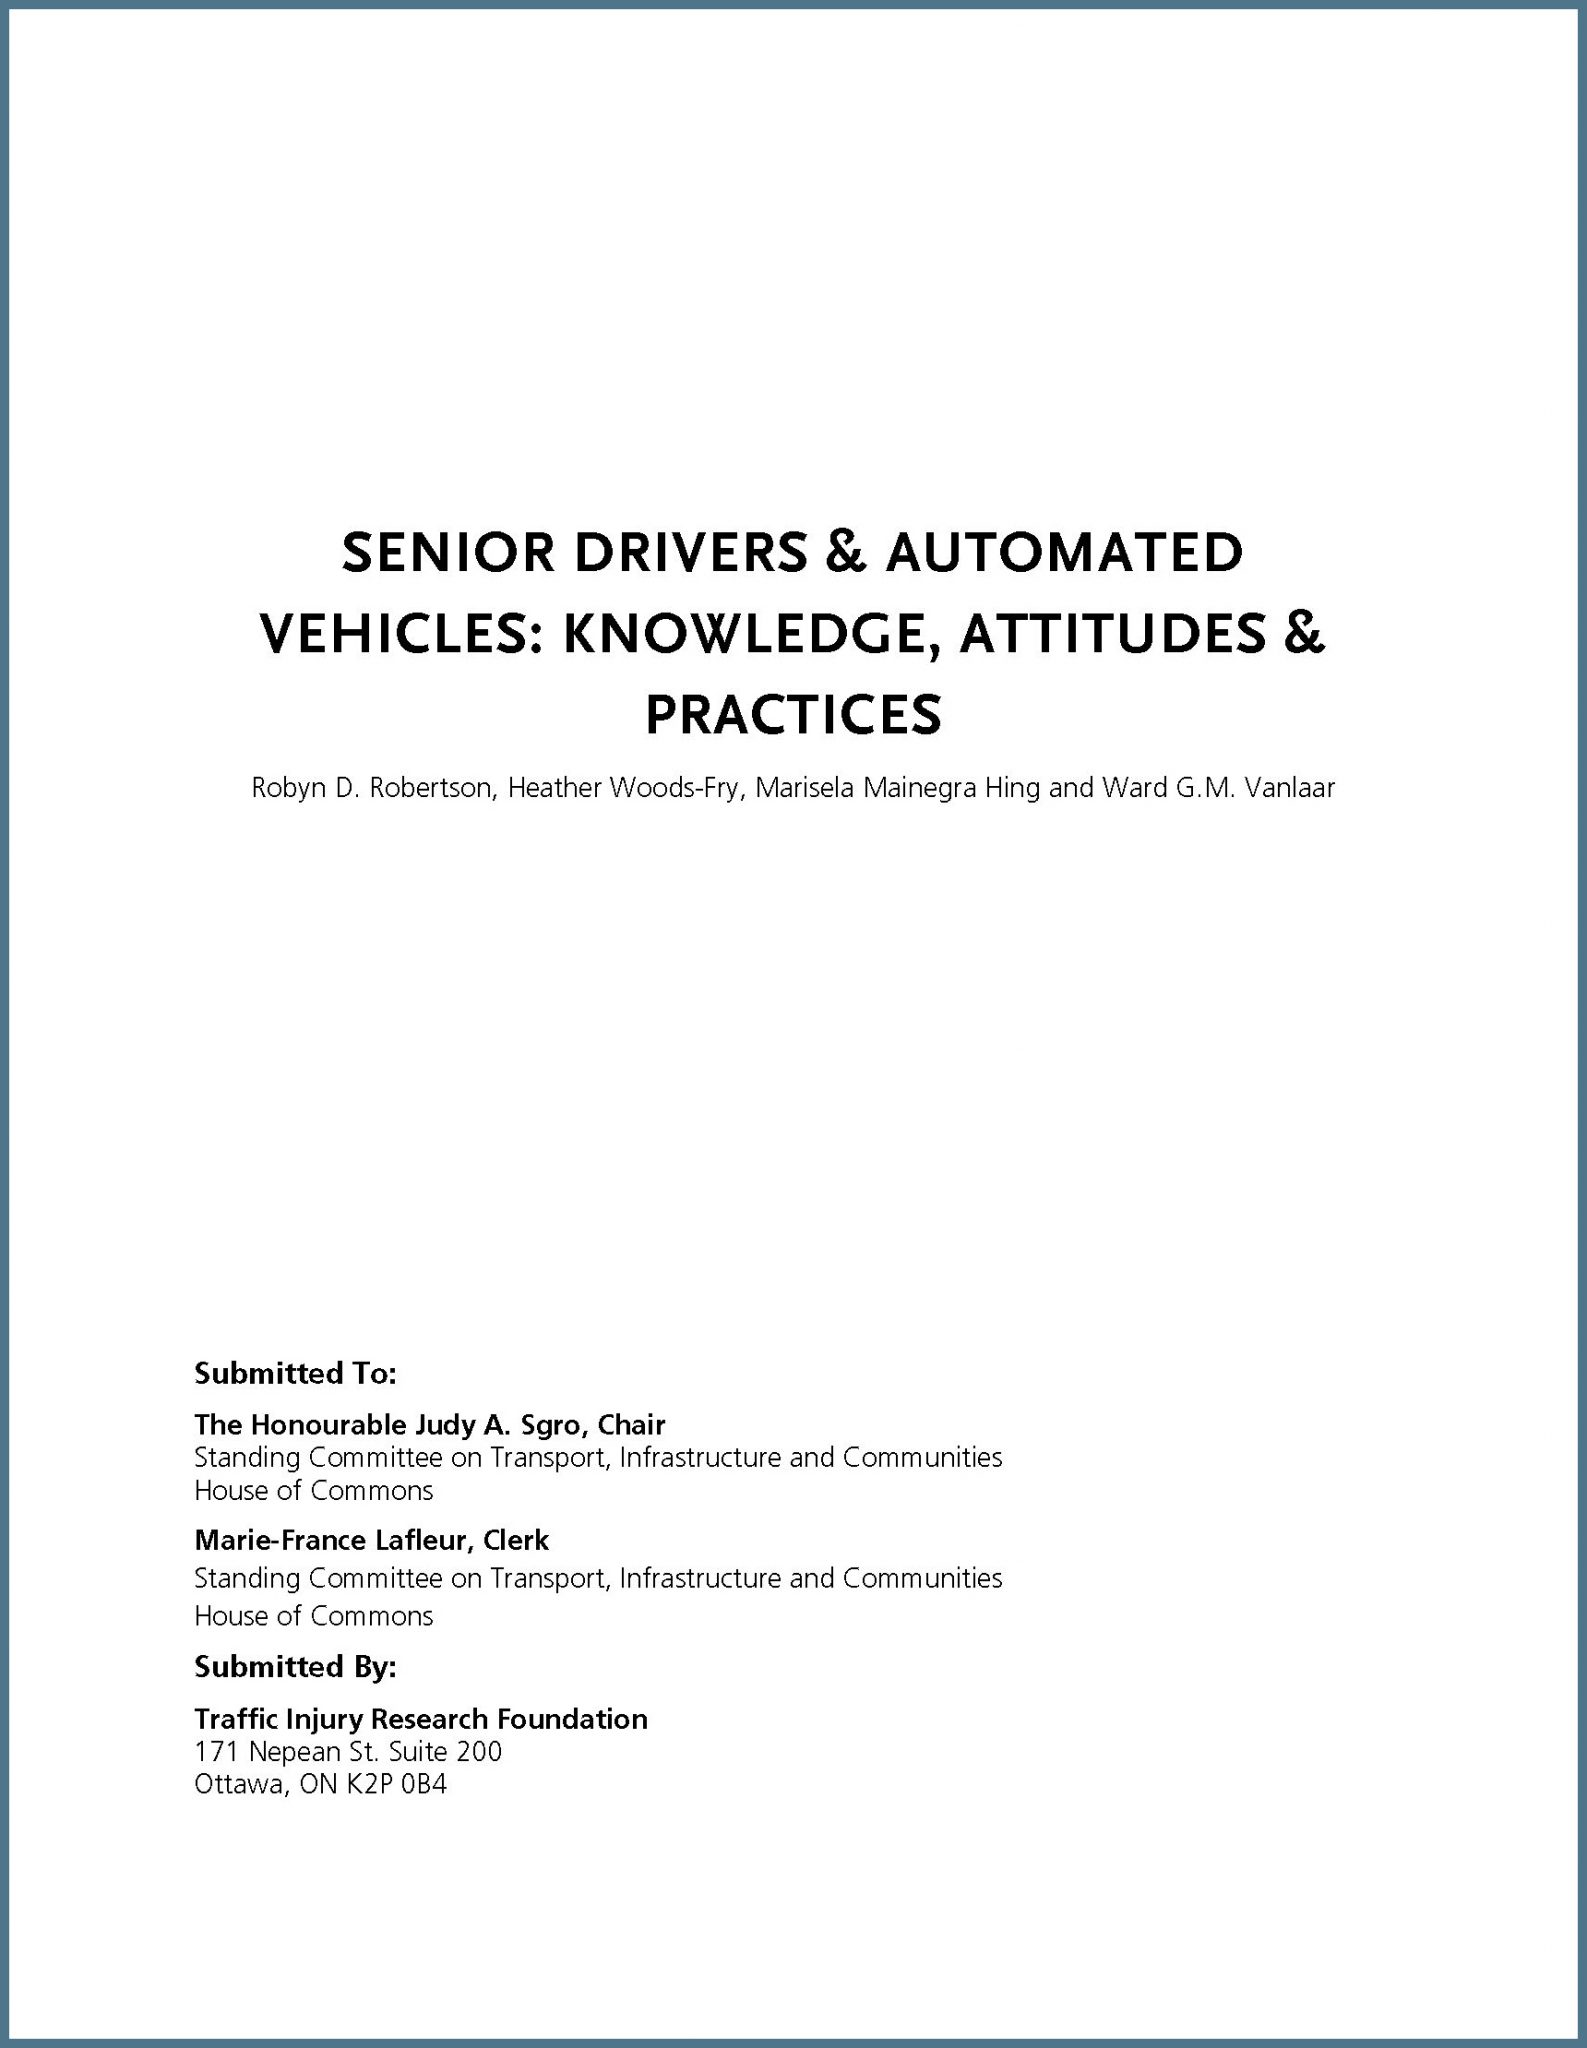 House Brief on Senior Drivers & Automated Vehicles: Knowledge, Attitudes & Practices